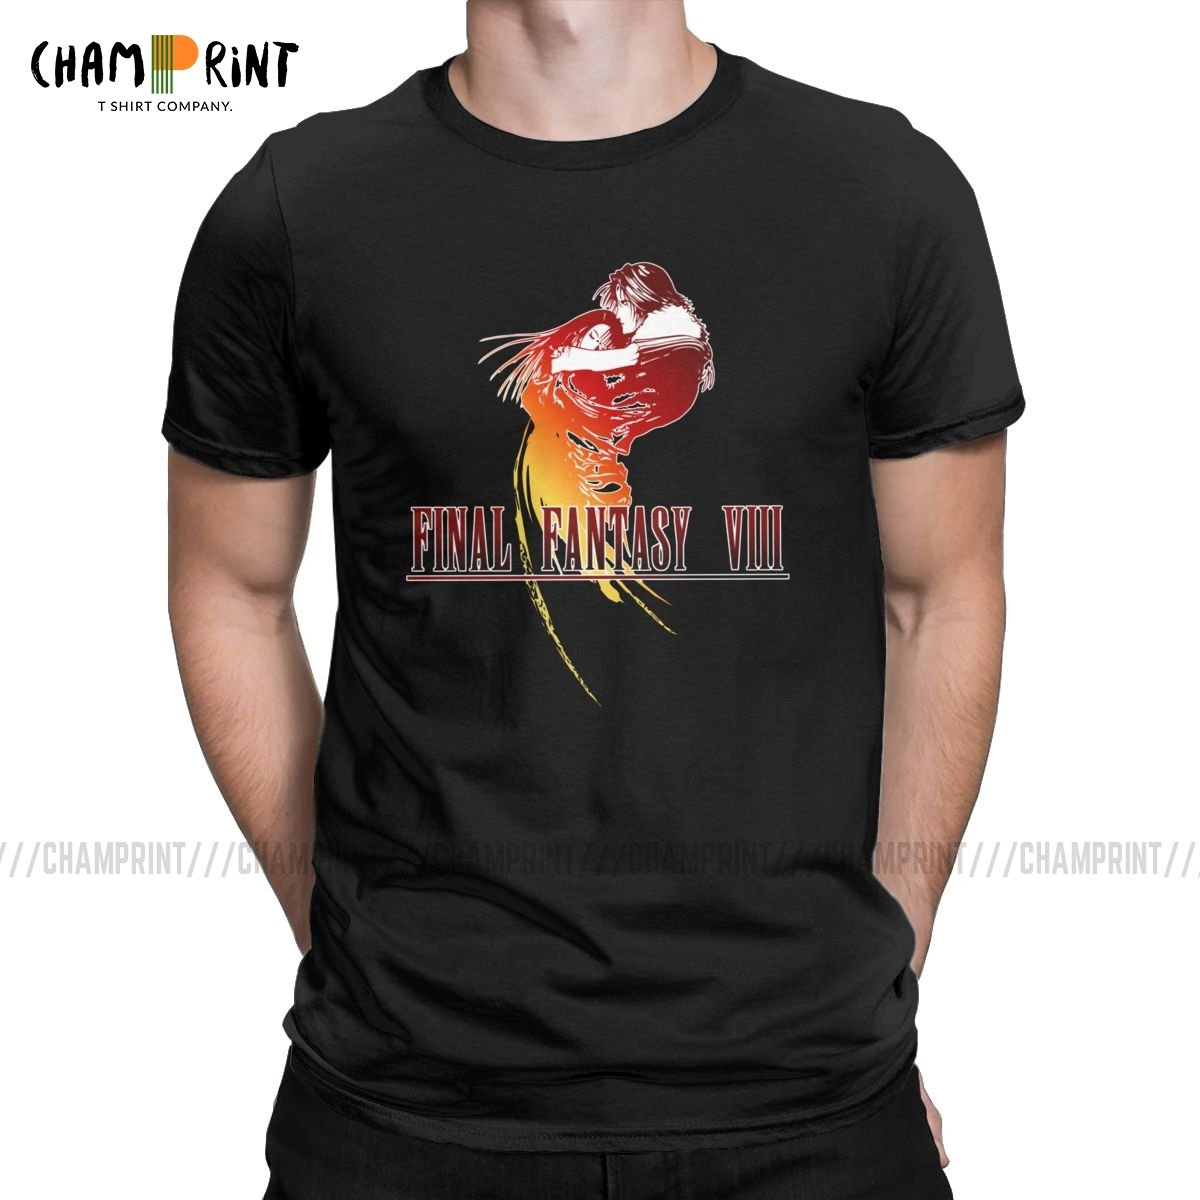 FF VIII T Shirt Men's 100% Cotton Leisure T-Shirts O Neck Final Fantasy Video Game Tee Shirt Short Sleeve Clothes Birthday Gift image